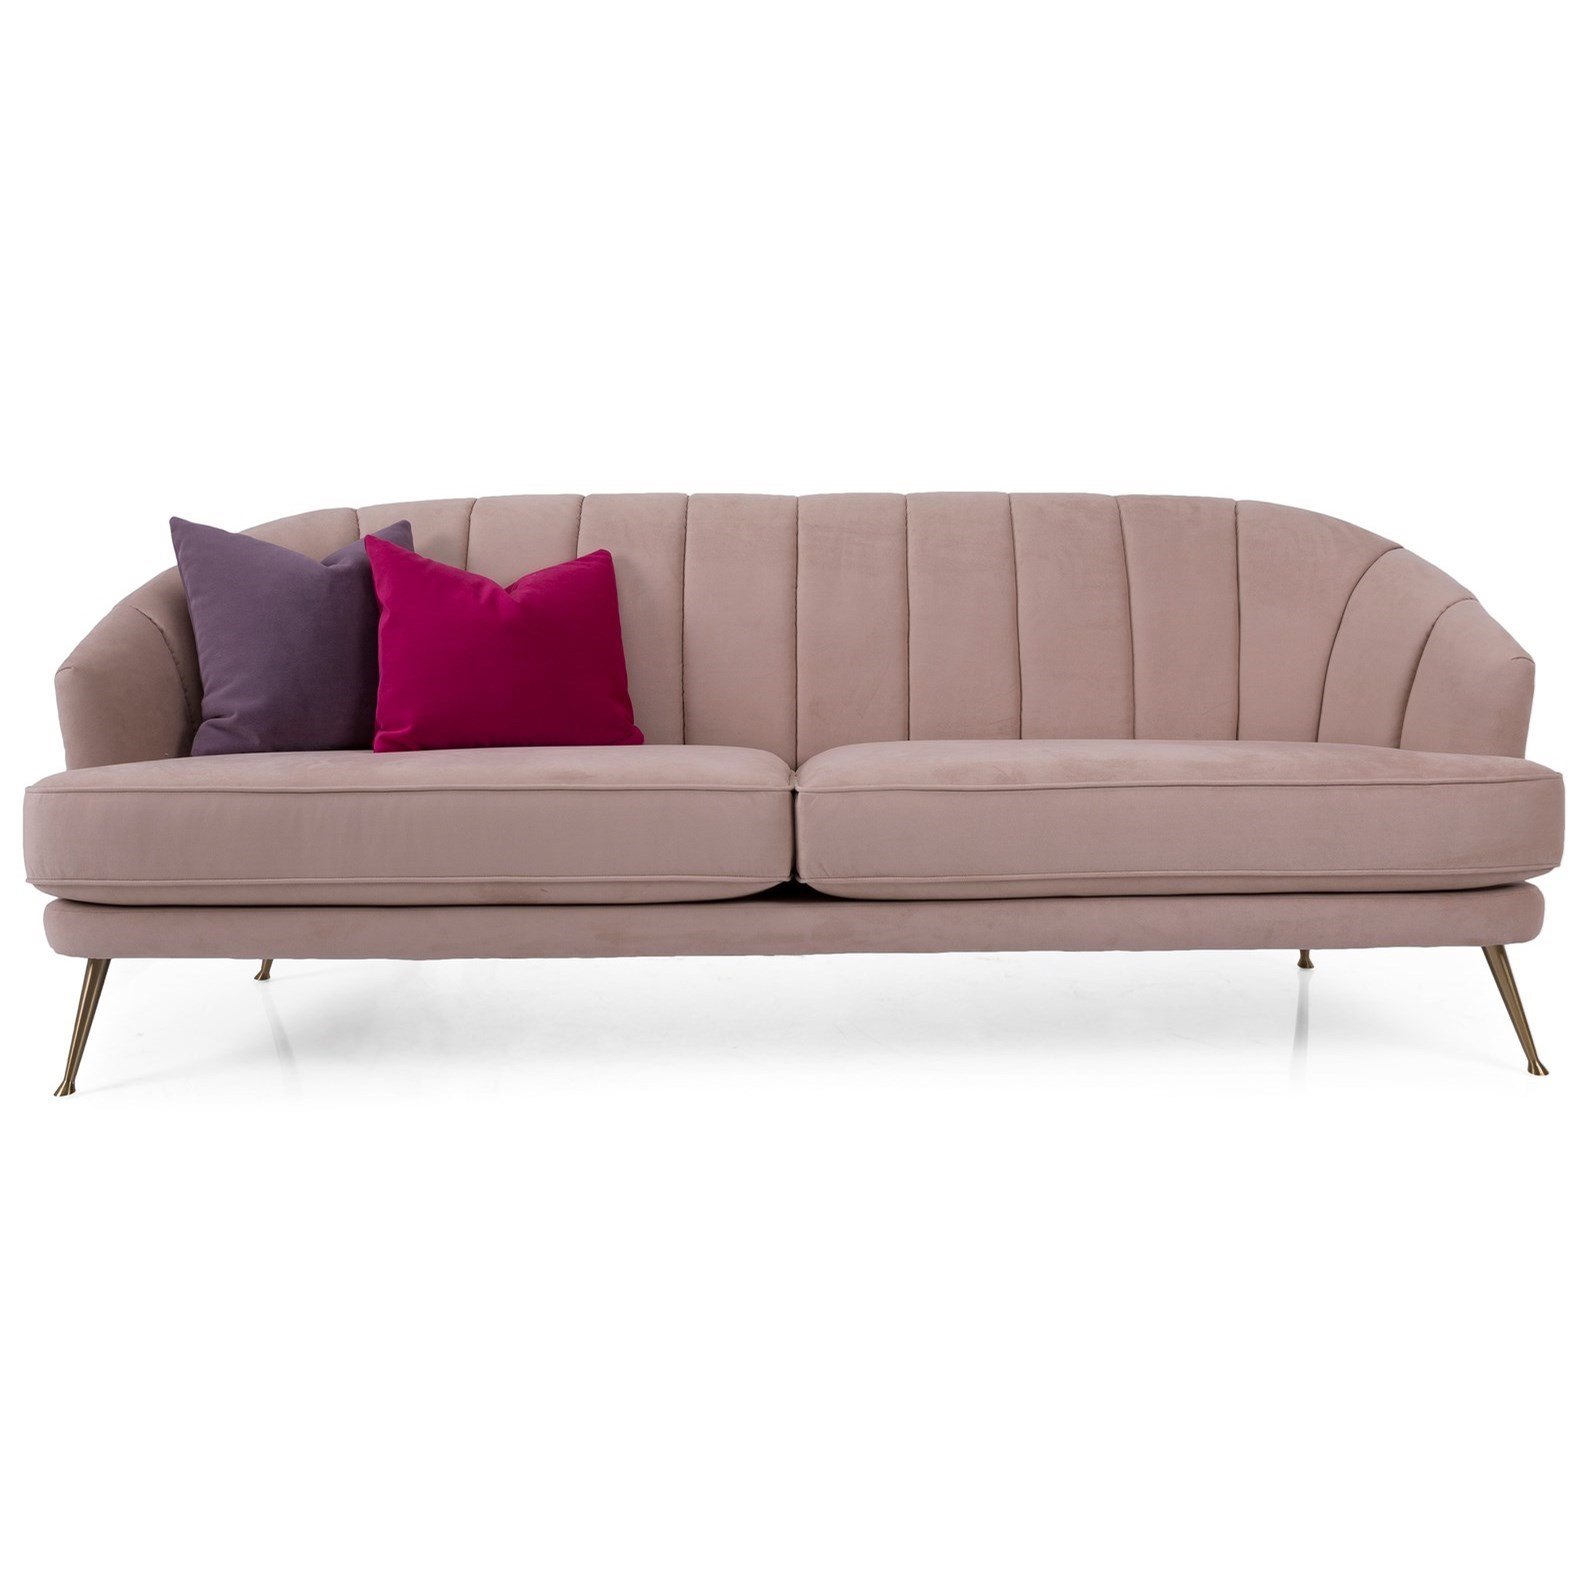 2988 Sofa by Taelor Designs at Bennett's Furniture and Mattresses